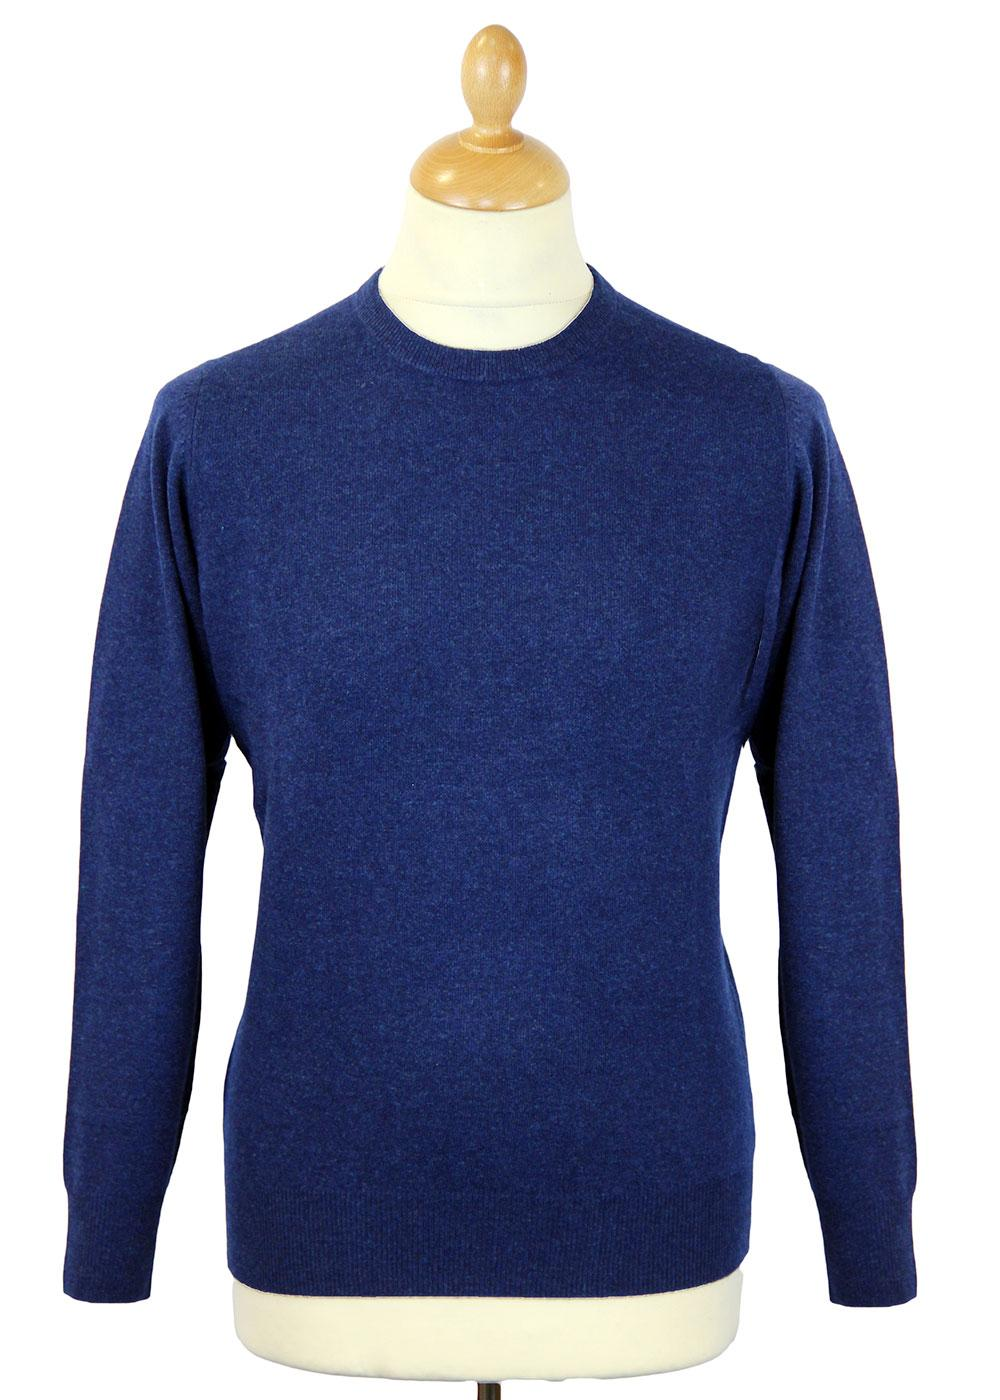 Brisbane ALAN PAINE Mod Wool Crew Neck Jumper (I)